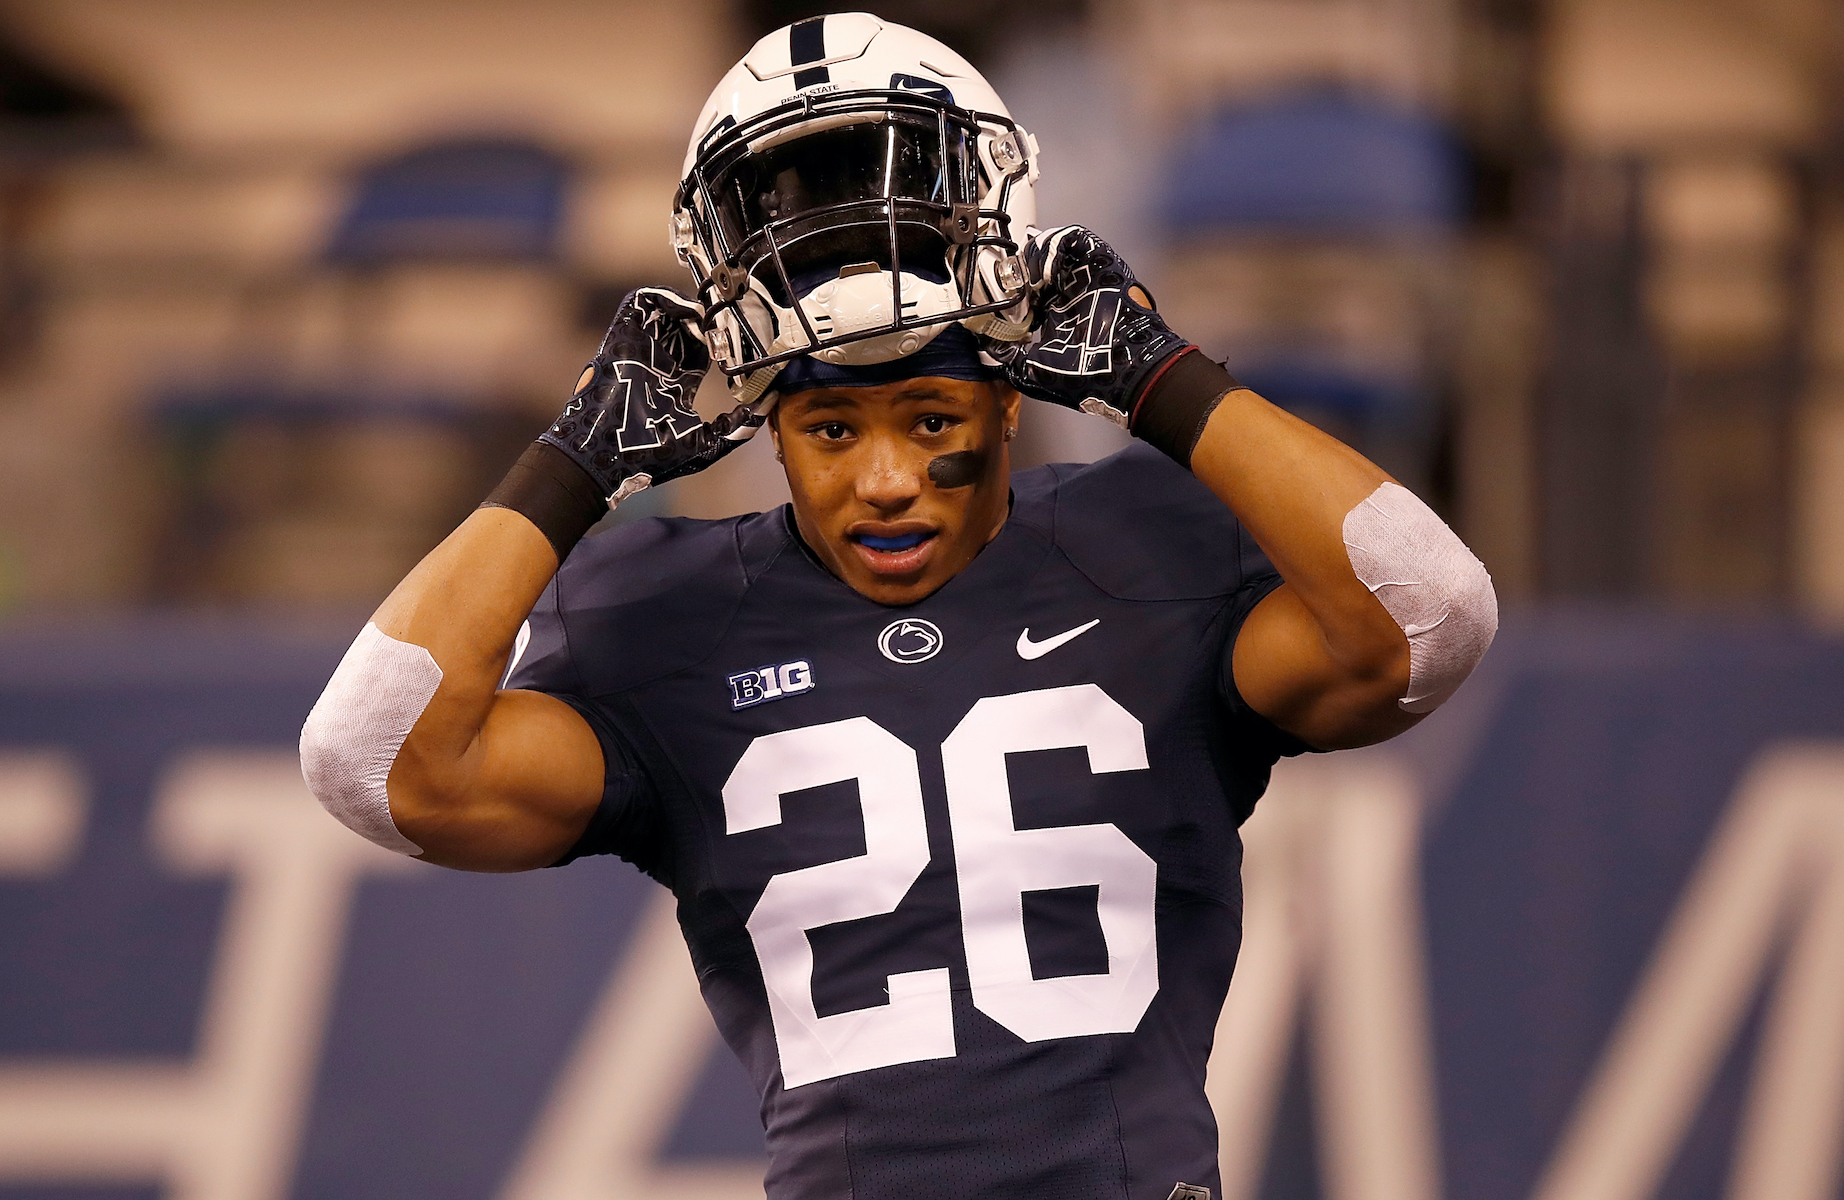 The Hardest Decision Saquon Barkley Has Had to Make: 'I Was Going Against My Word'